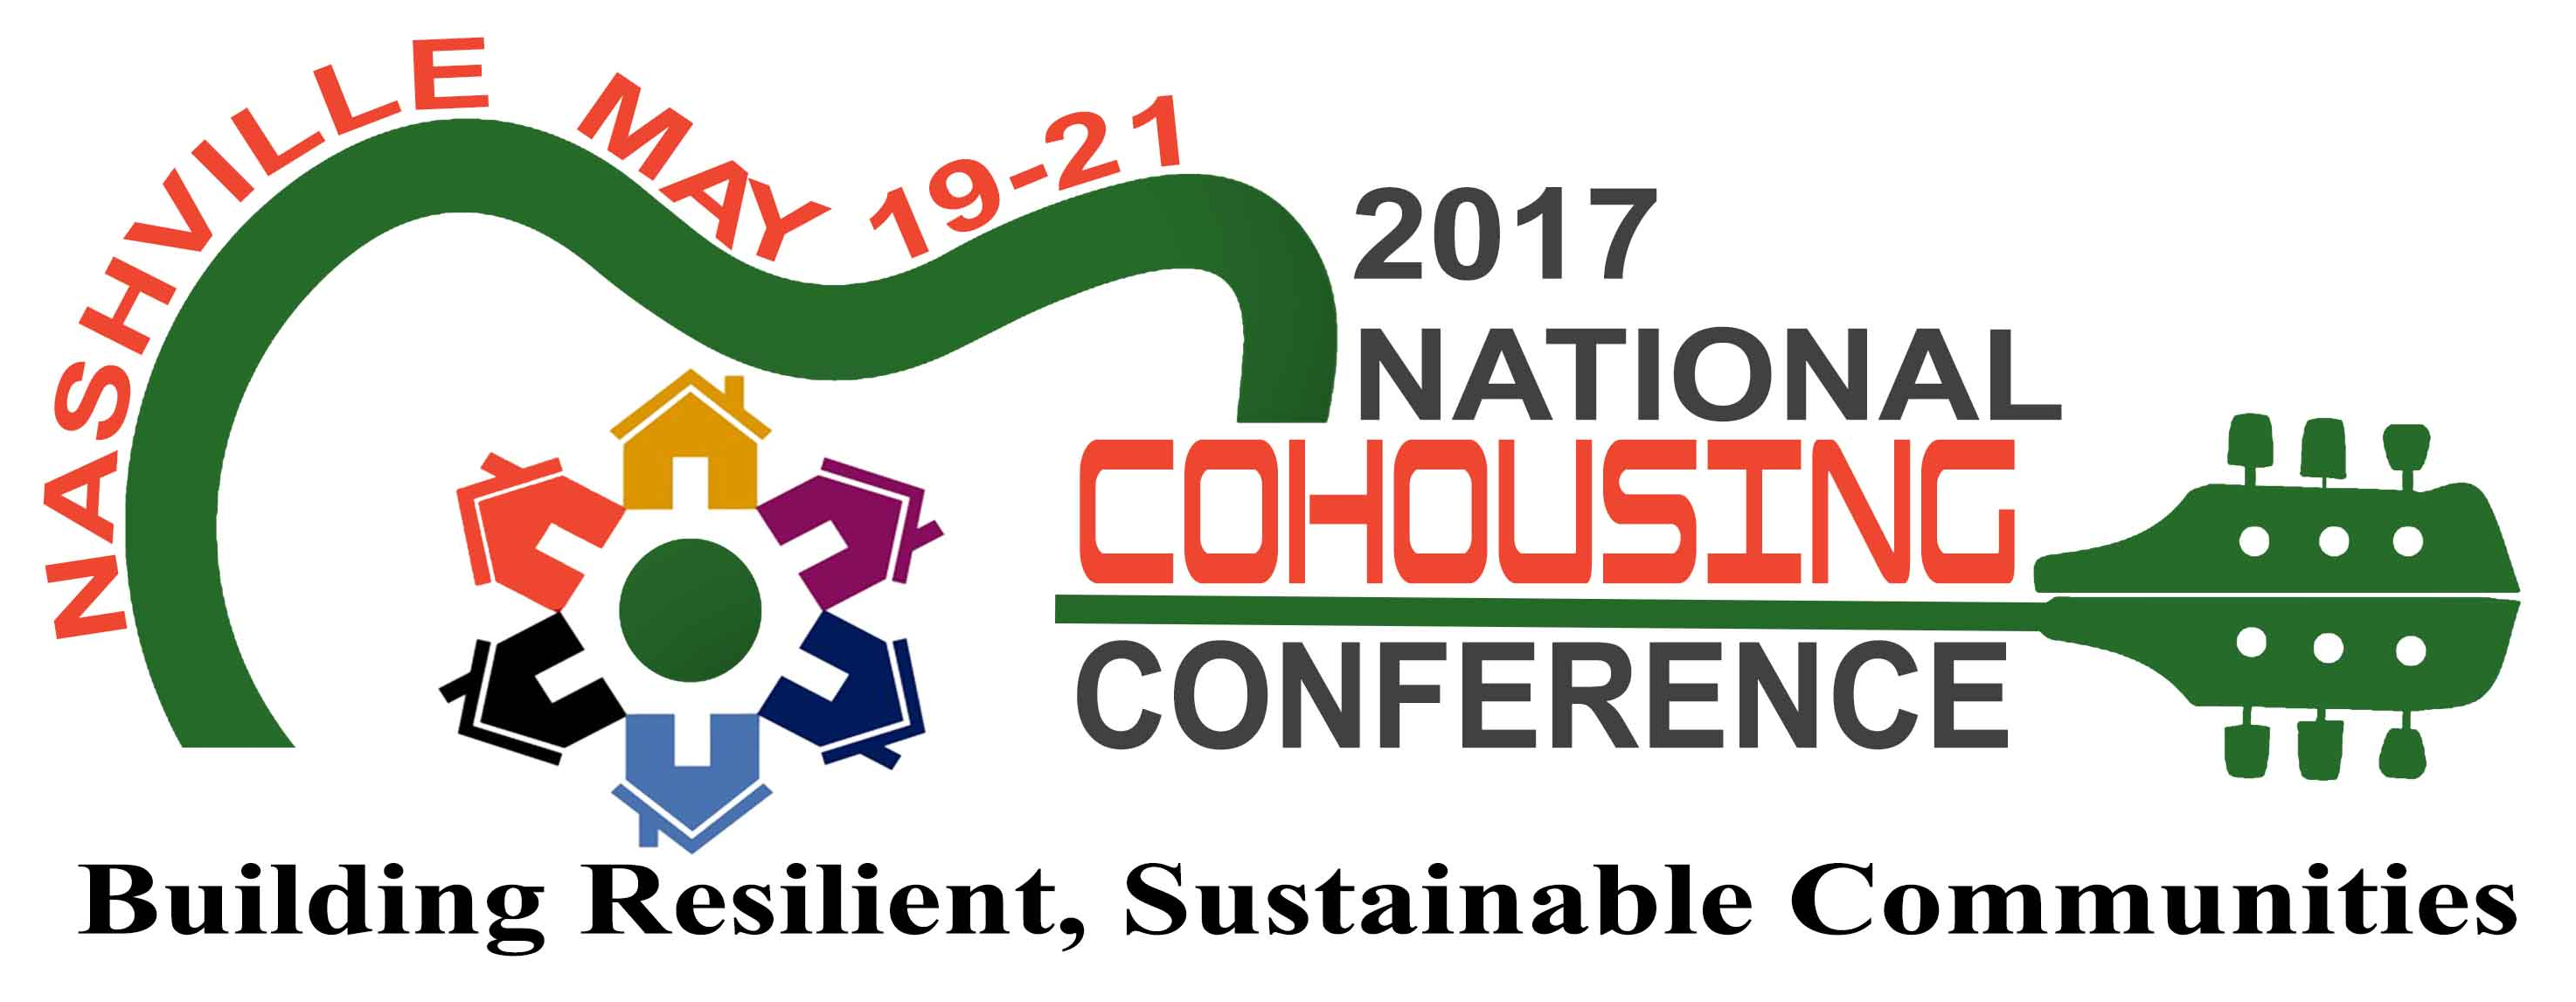 2017 National Cohousing Conference: Building Resilient Sustainable Communities